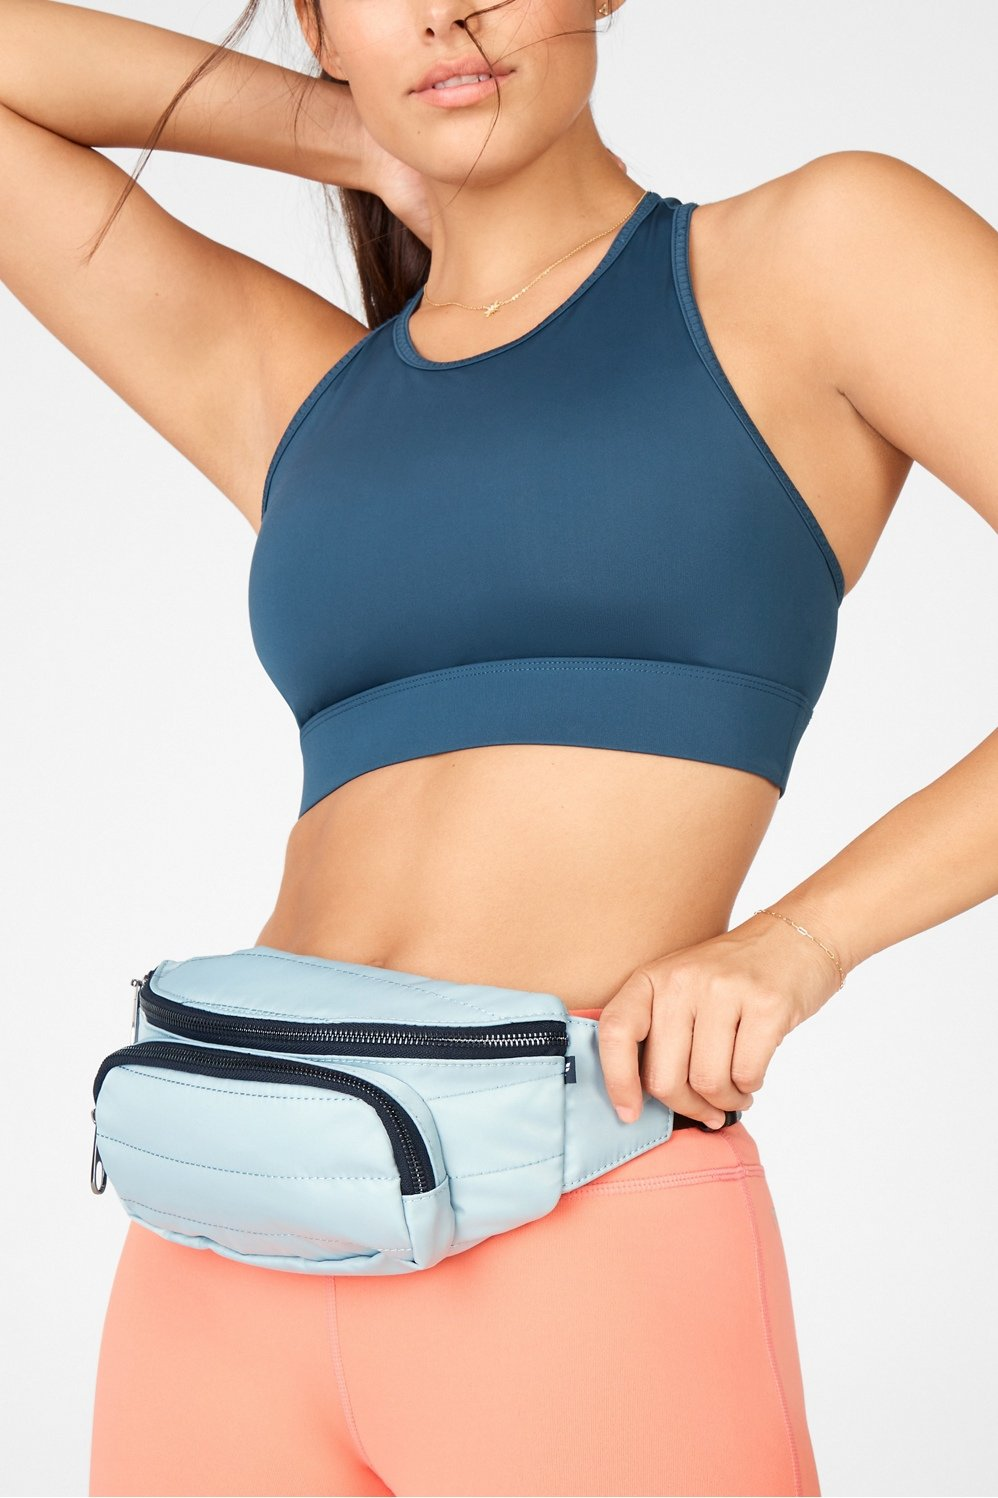 A convenient size to fit all your essentials without the bulk, our bum pack can be worn across your chest or around your waist—whichever looks better for the 'gram.